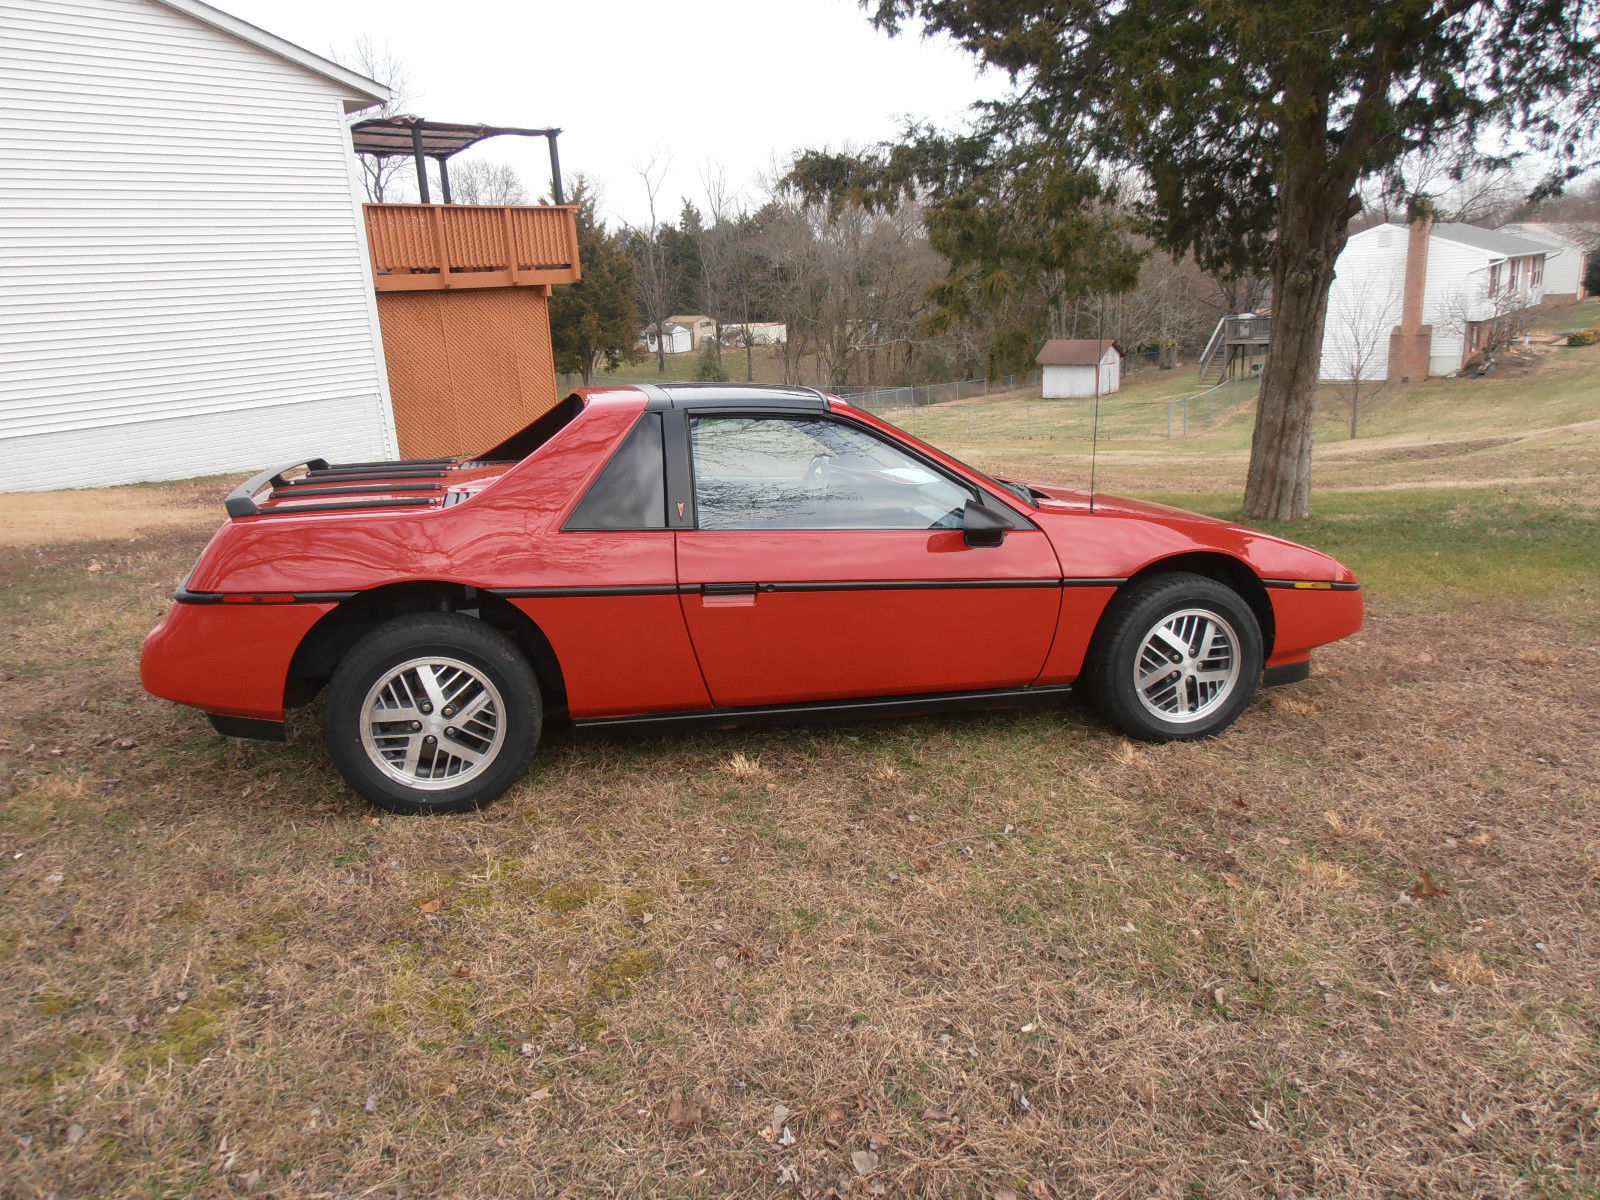 1988 pontiac fiero value leader coupe 2 door 2 5l for sale in fredericksburg virginia united. Black Bedroom Furniture Sets. Home Design Ideas